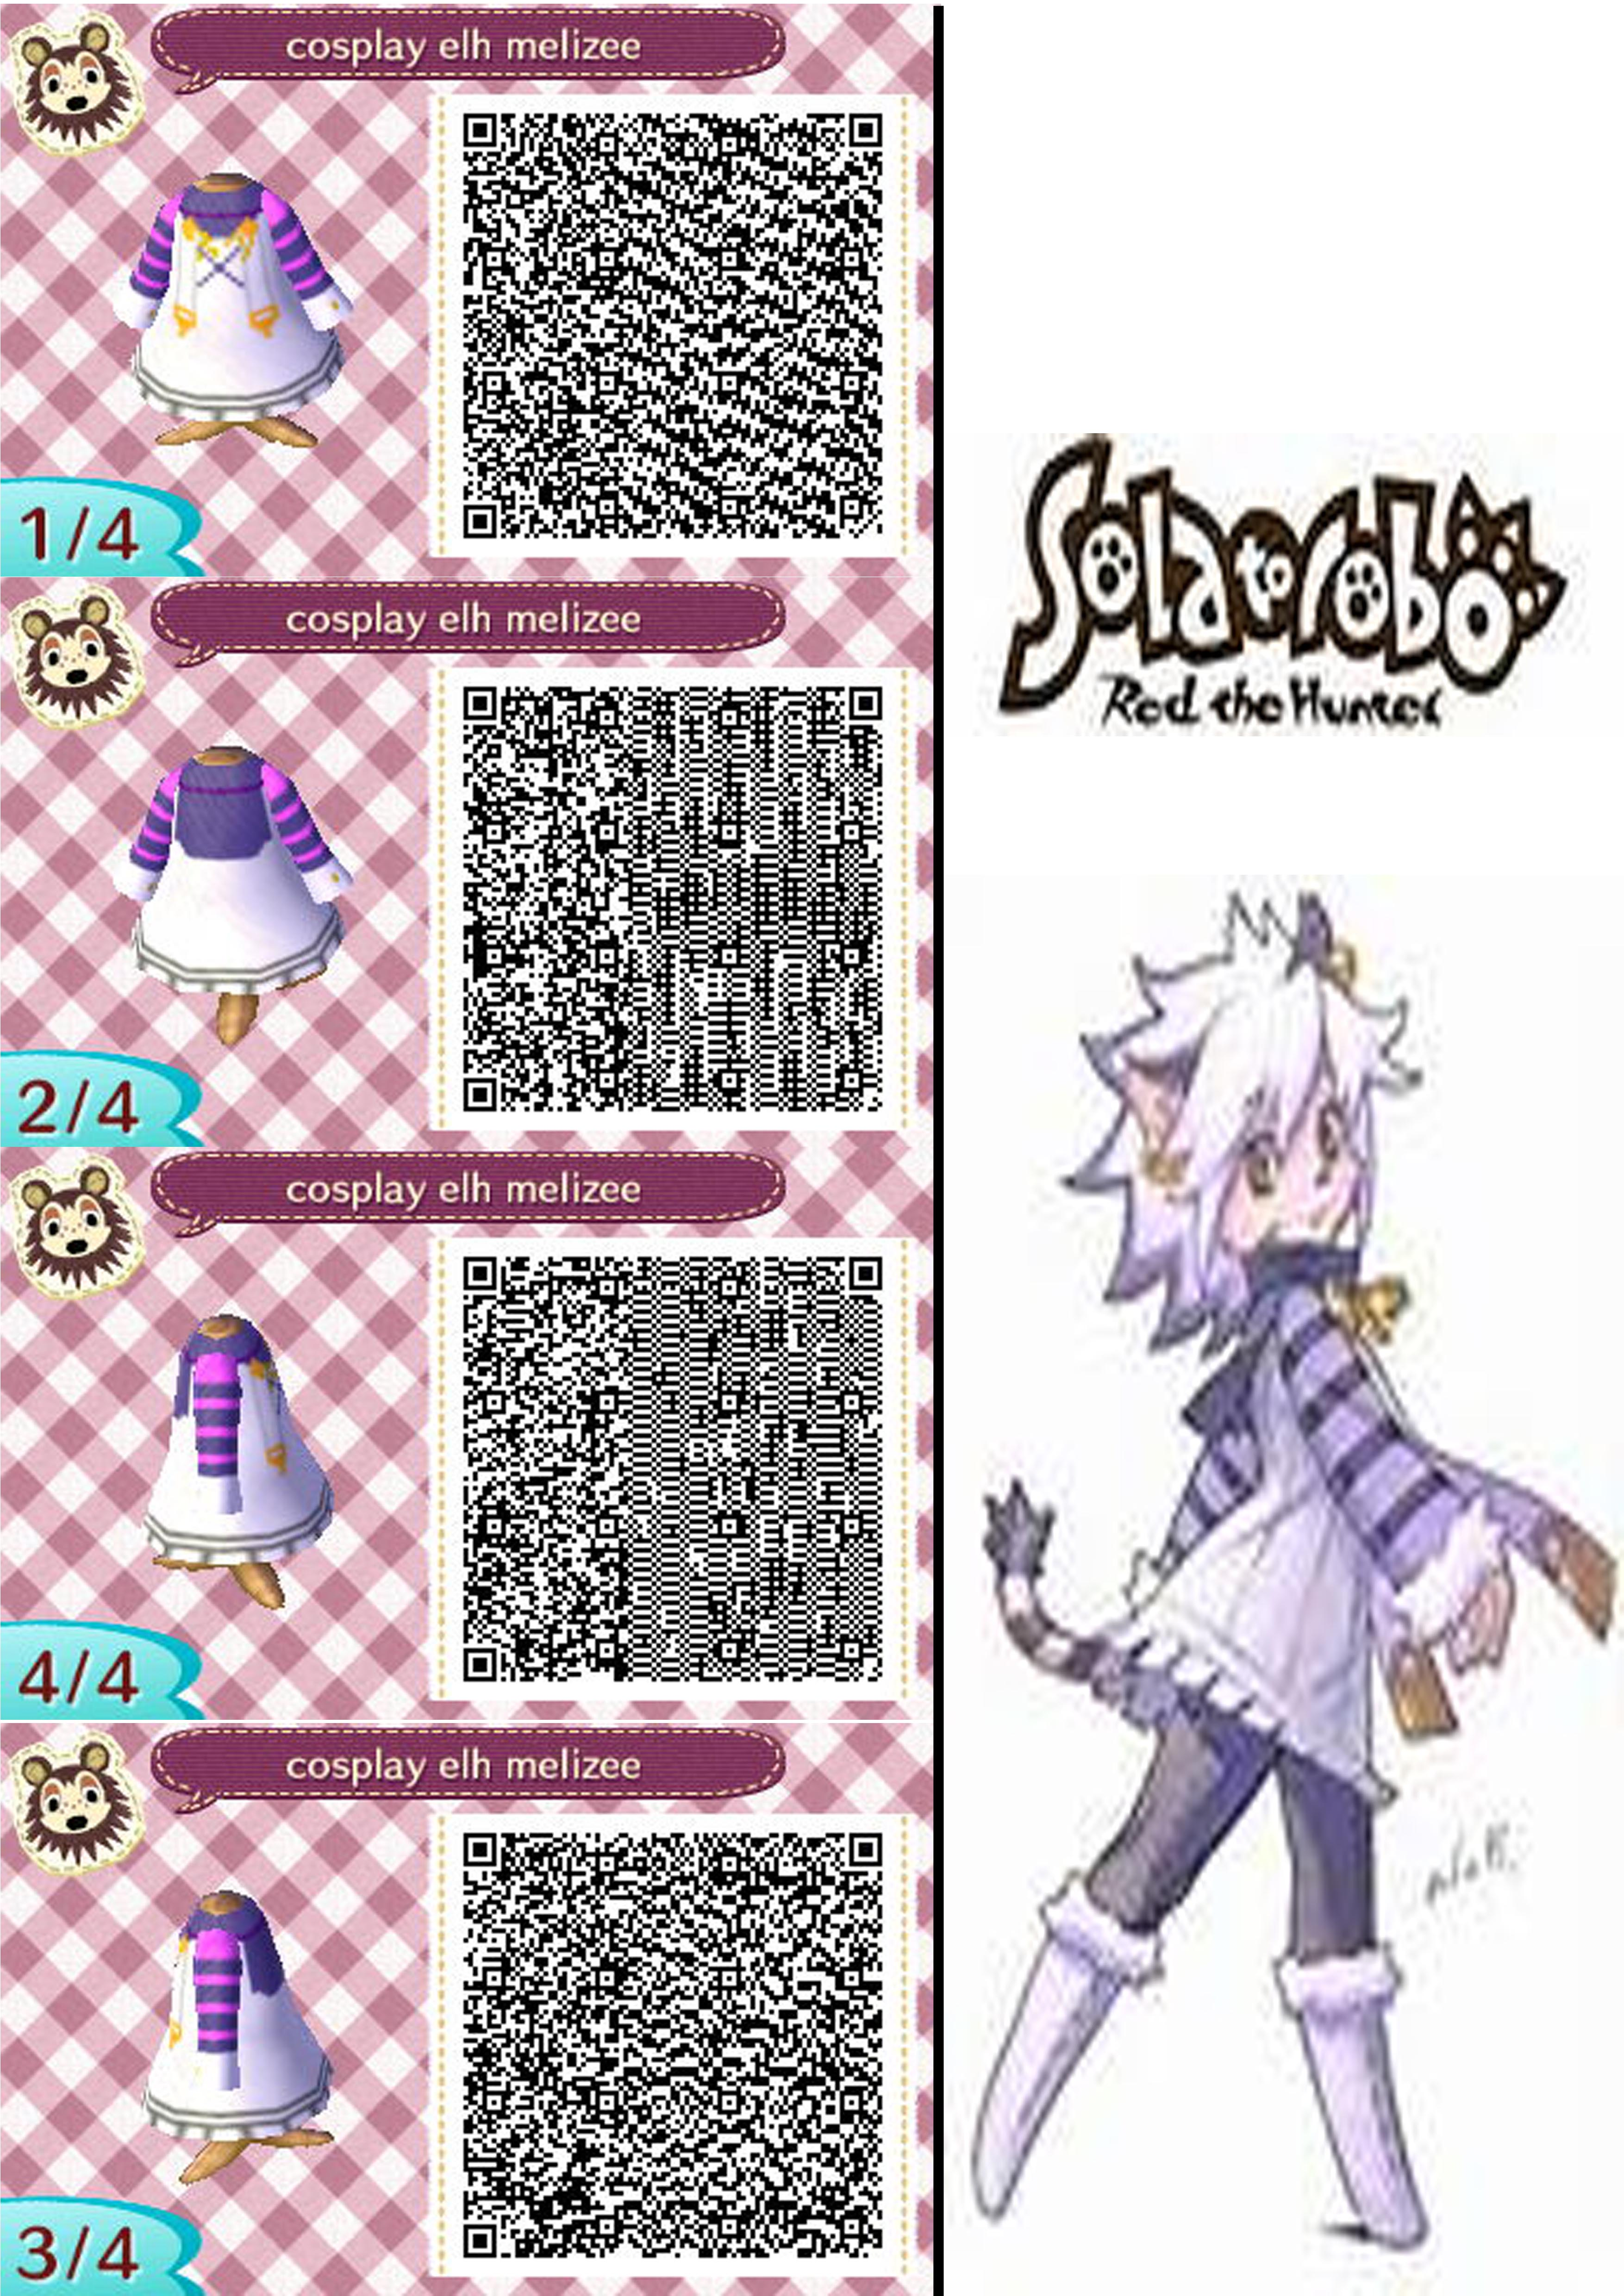 Qr code animal crossing new leaf  SOLATOROBO  elh by lukioyoyoQr Codes Animal Crossing New Leaf Dresses